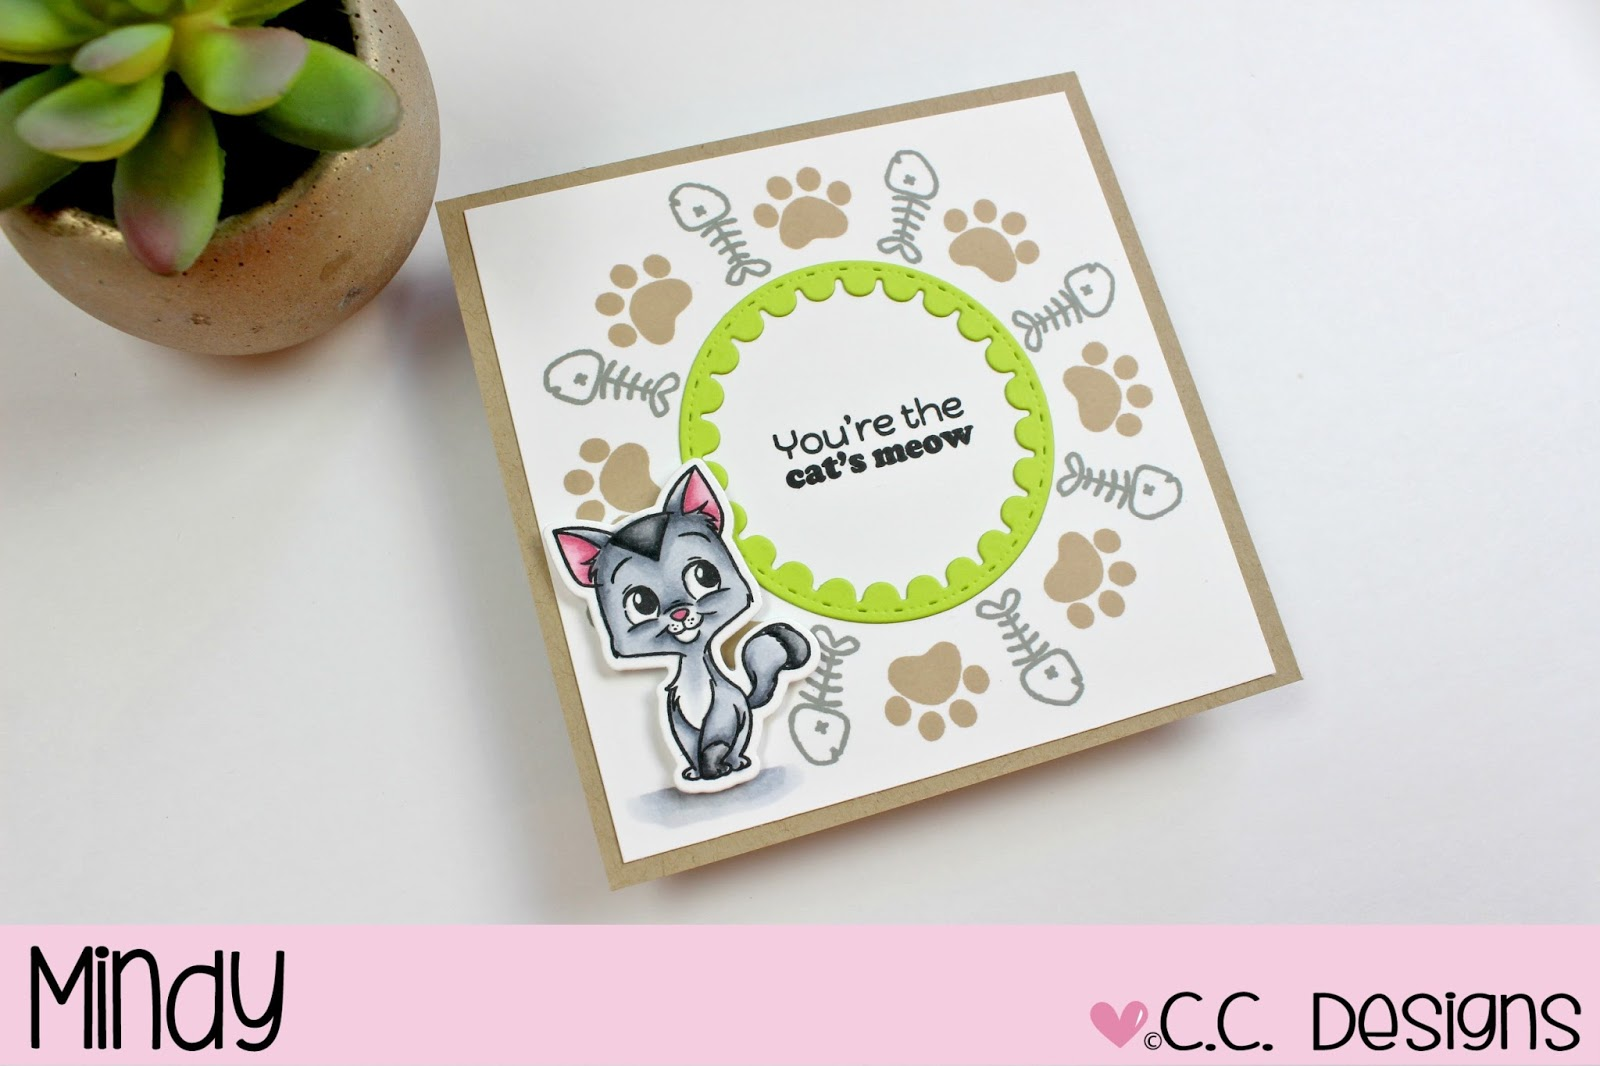 My Kitty Is Stamped On Neenah White Cardstock 80lb With A Copic Friendly Ink And Colored Copics I Also This Fun Sentiment Into The Middle